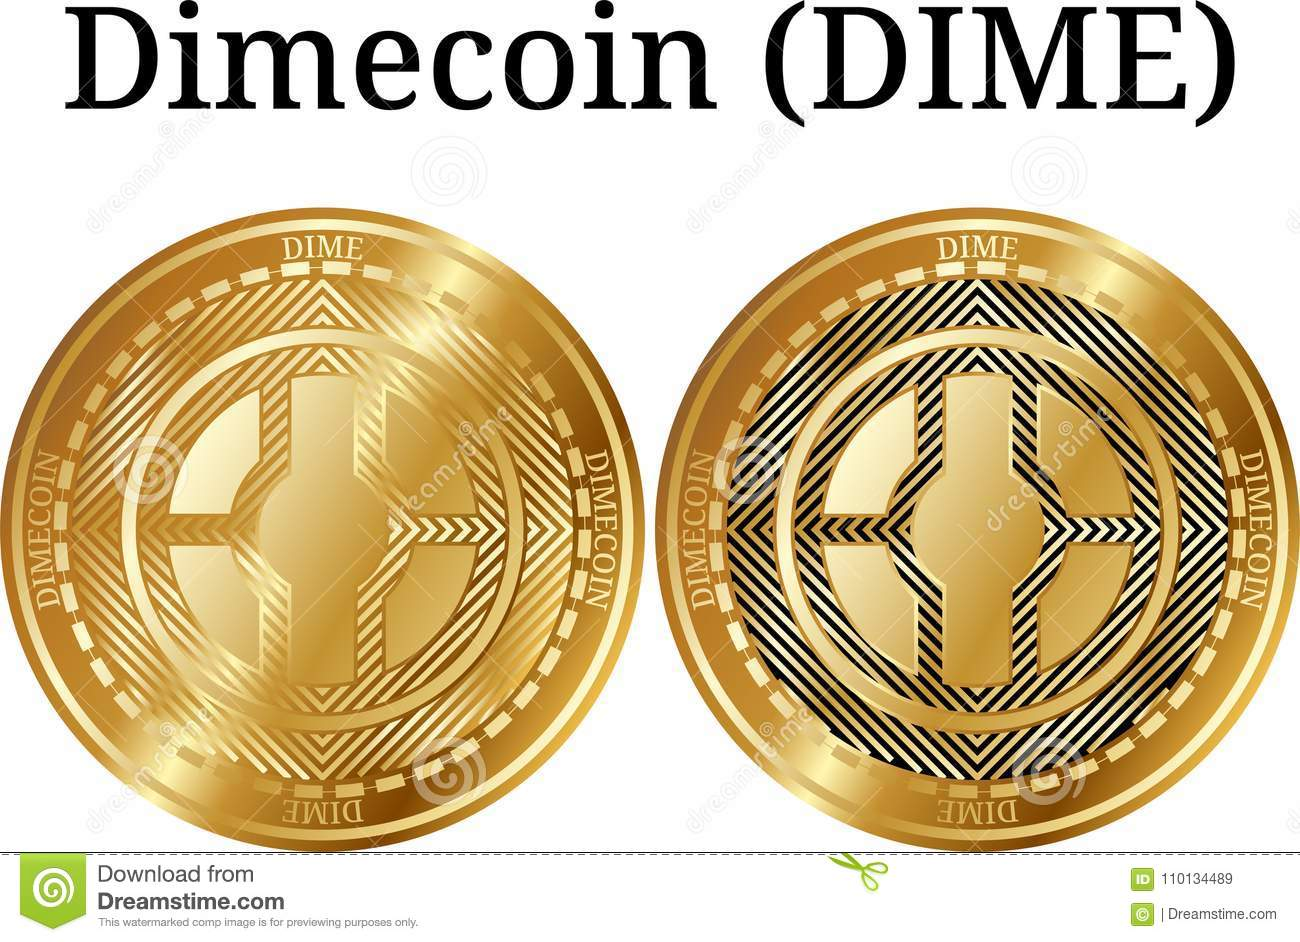 Dimecoin crypto currency is betting on sports with your friends legal